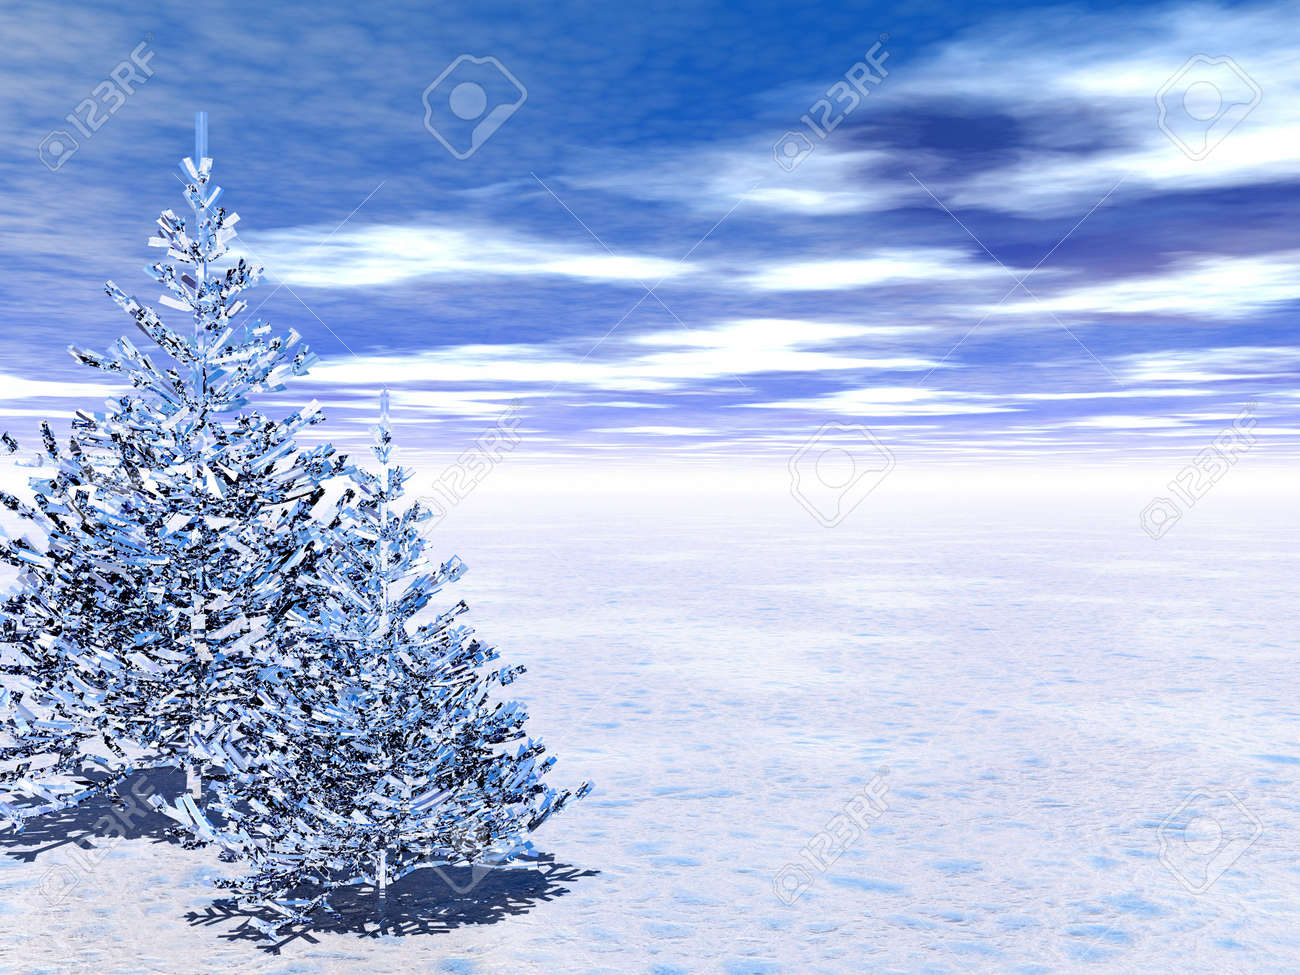 More similar stock images of 3d landscape with fall tree - Winter Unreal Pine Trees 3d Scene More In My Portfolio Stock Photo